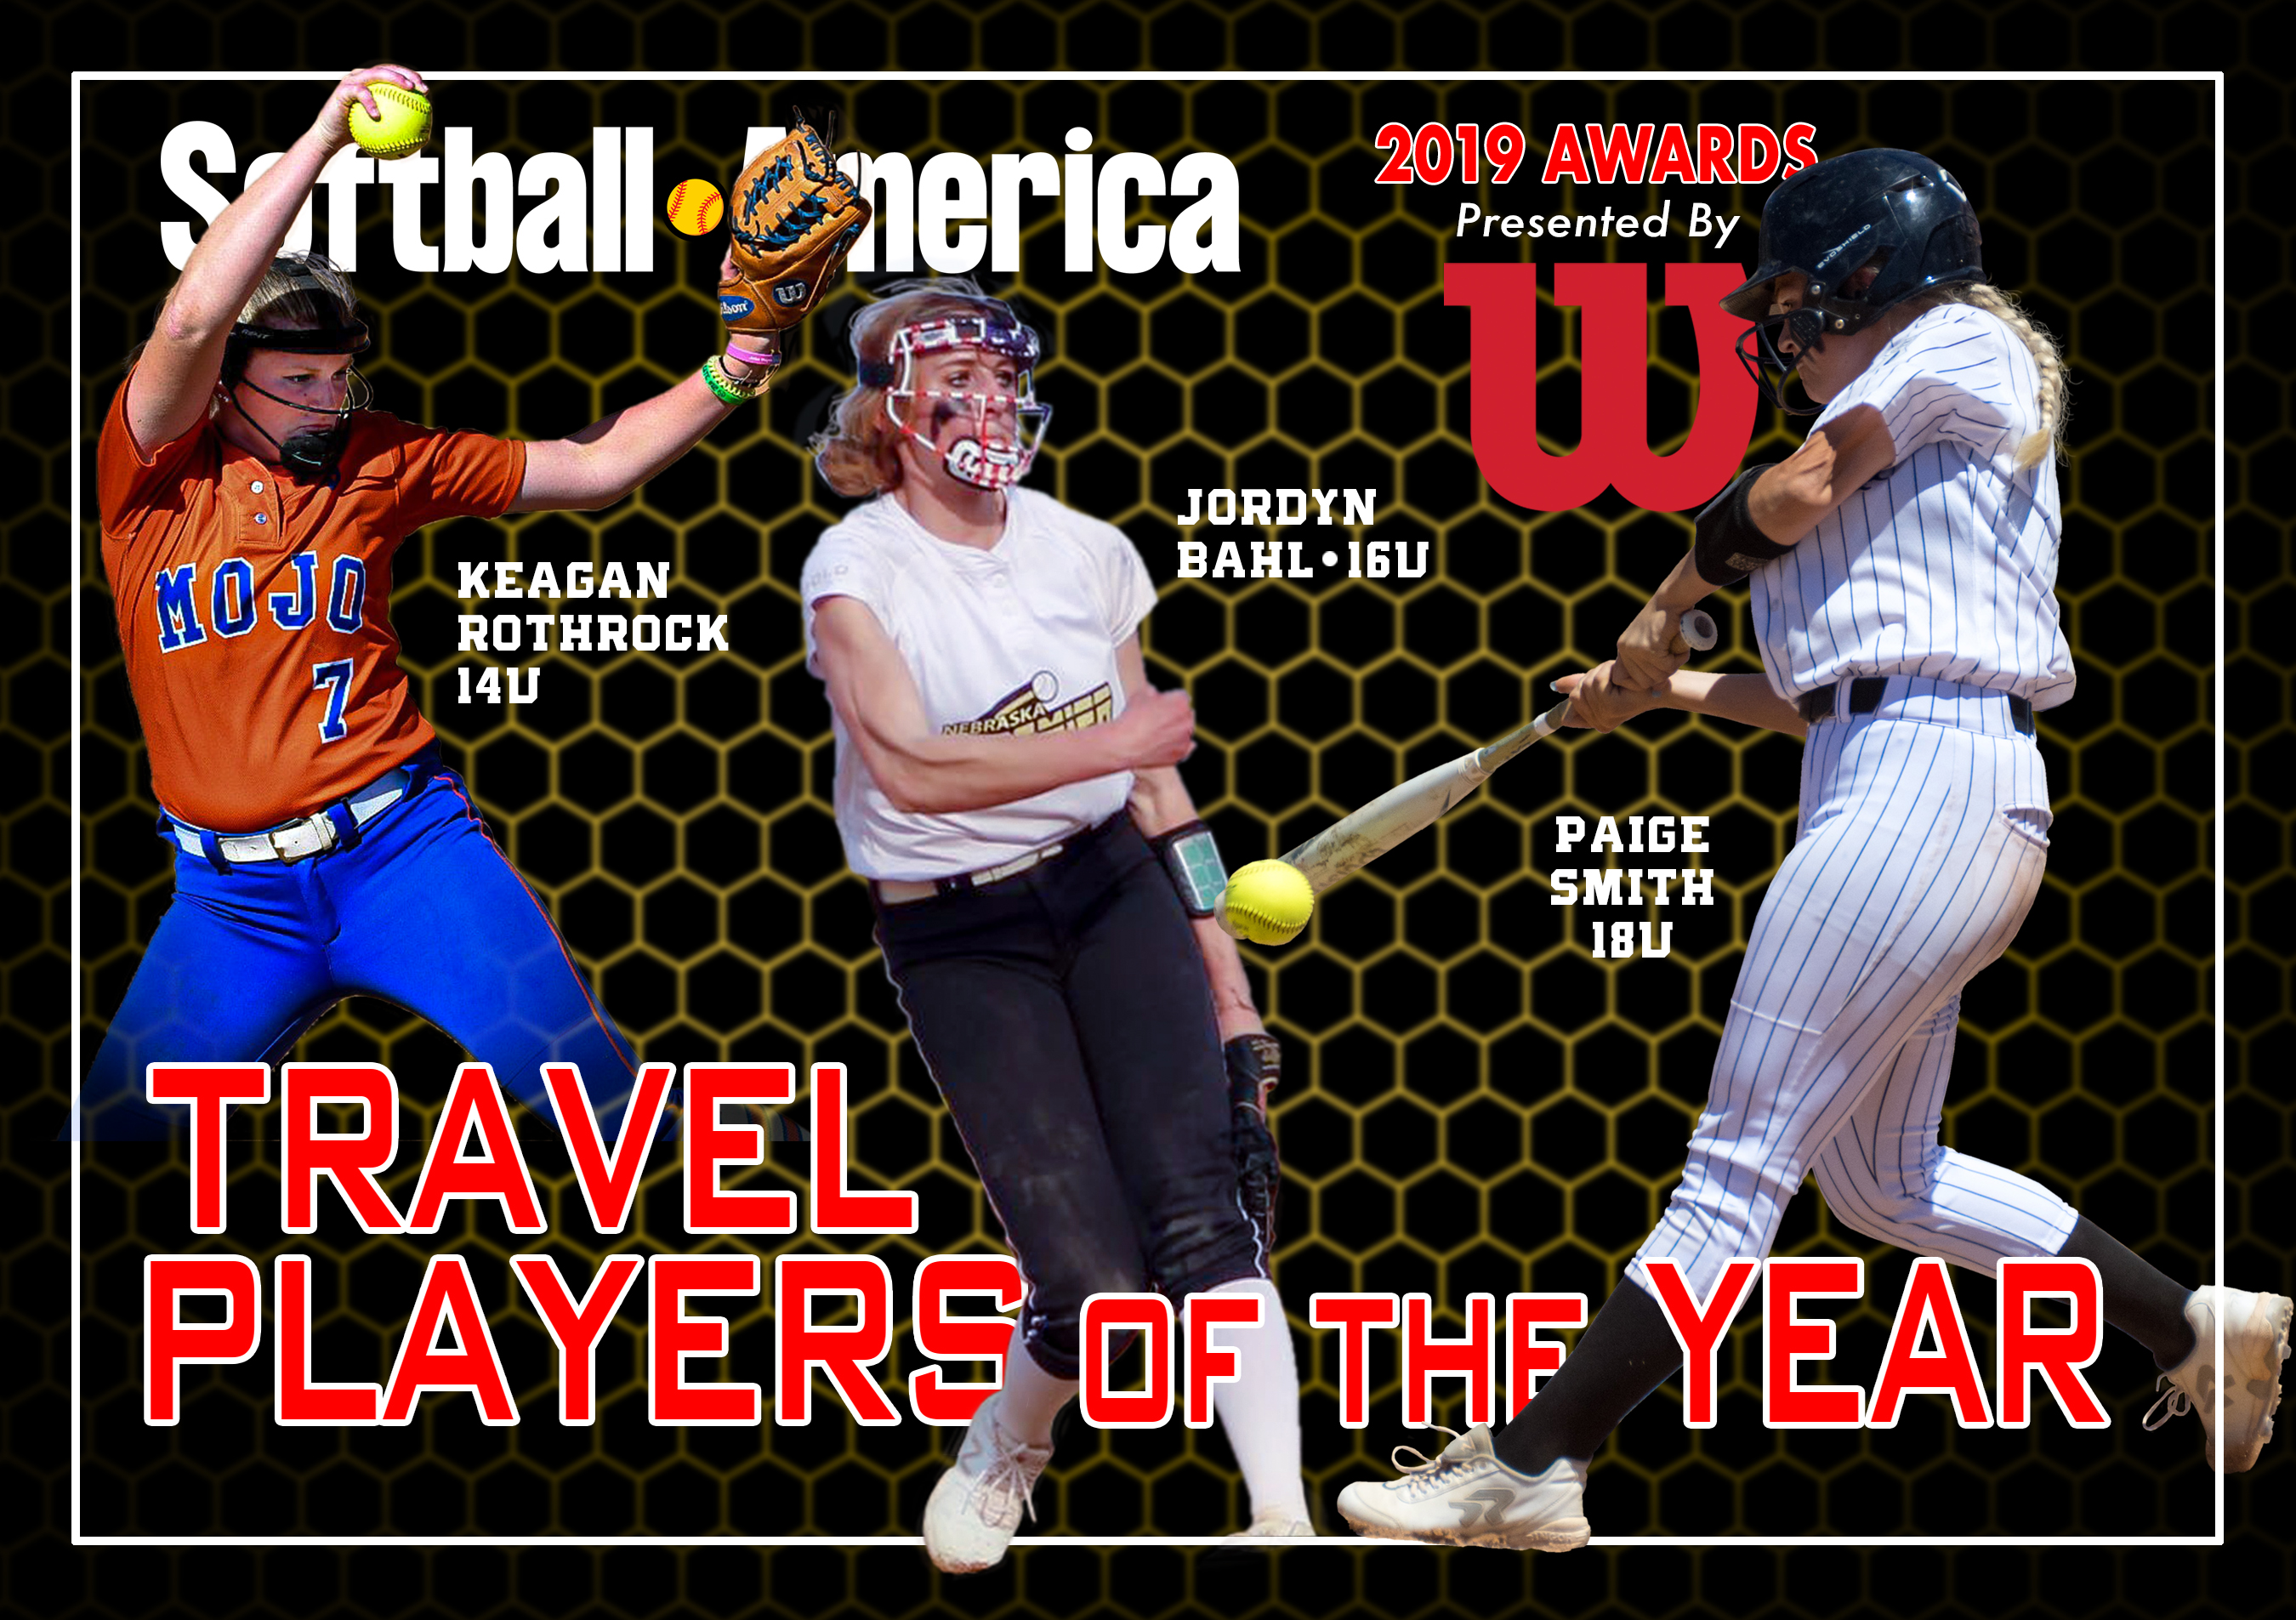 2019 Travel Players Of The Year